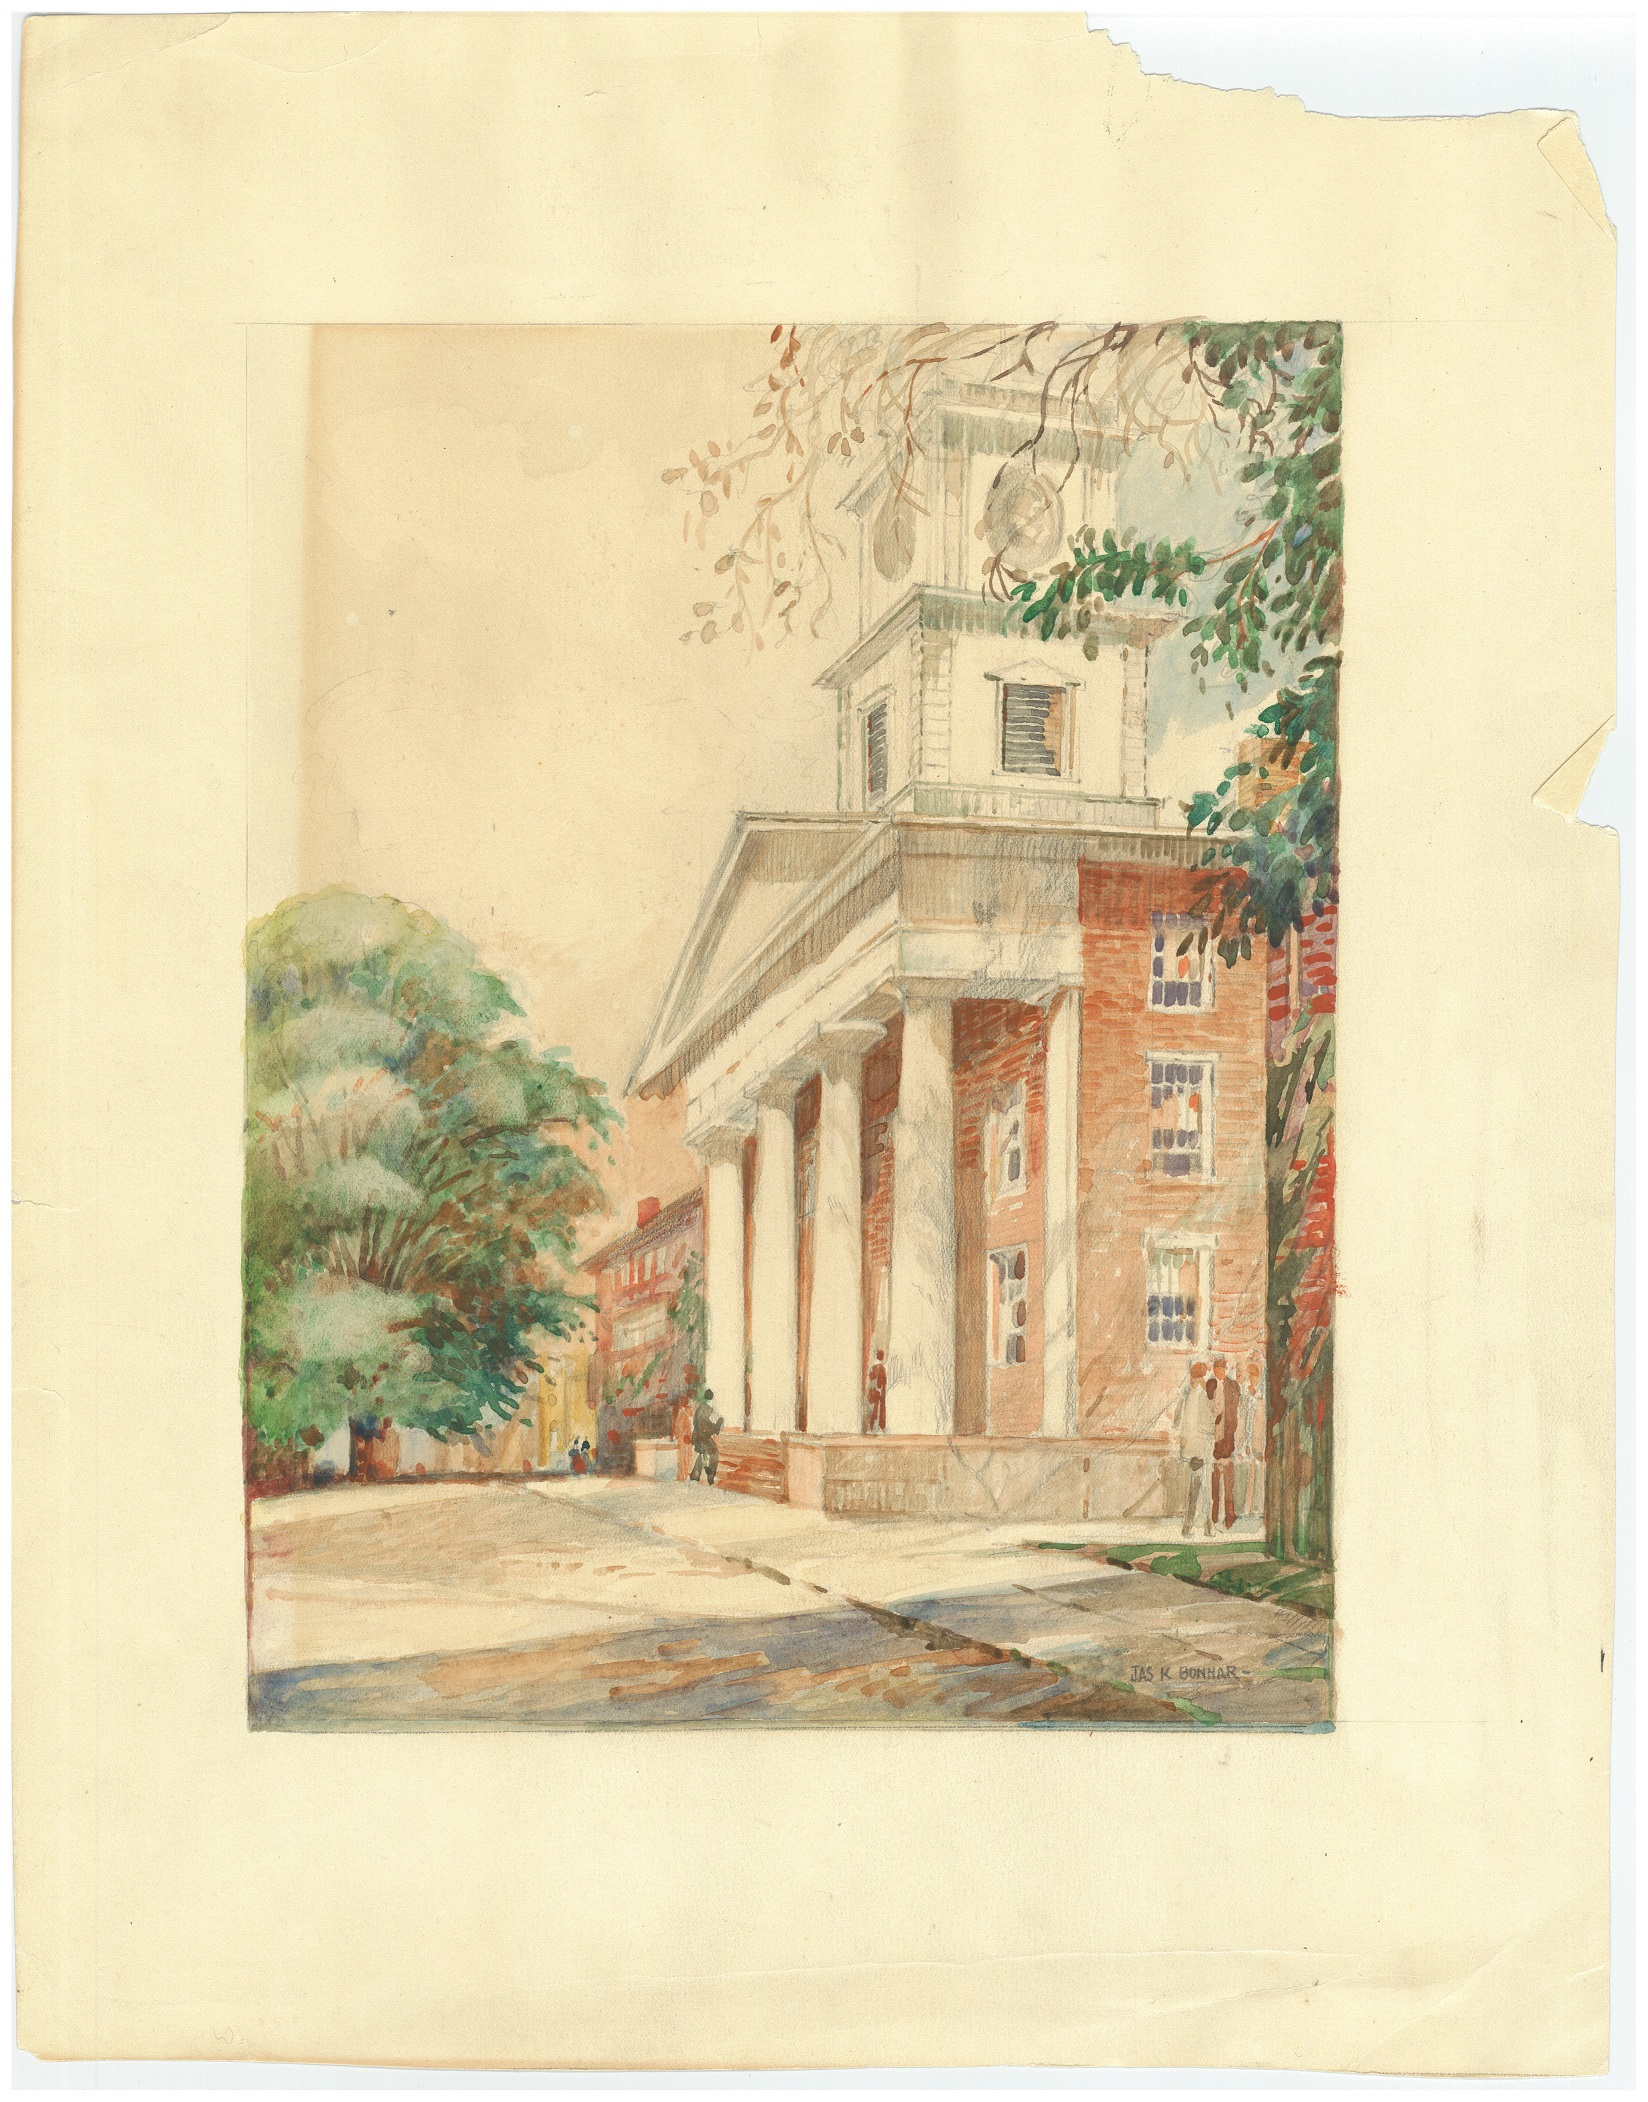 College students, wearing suits, wander among the large columns and stairway leading into the brick chapel building. The walkway is shaded by unseen trees.